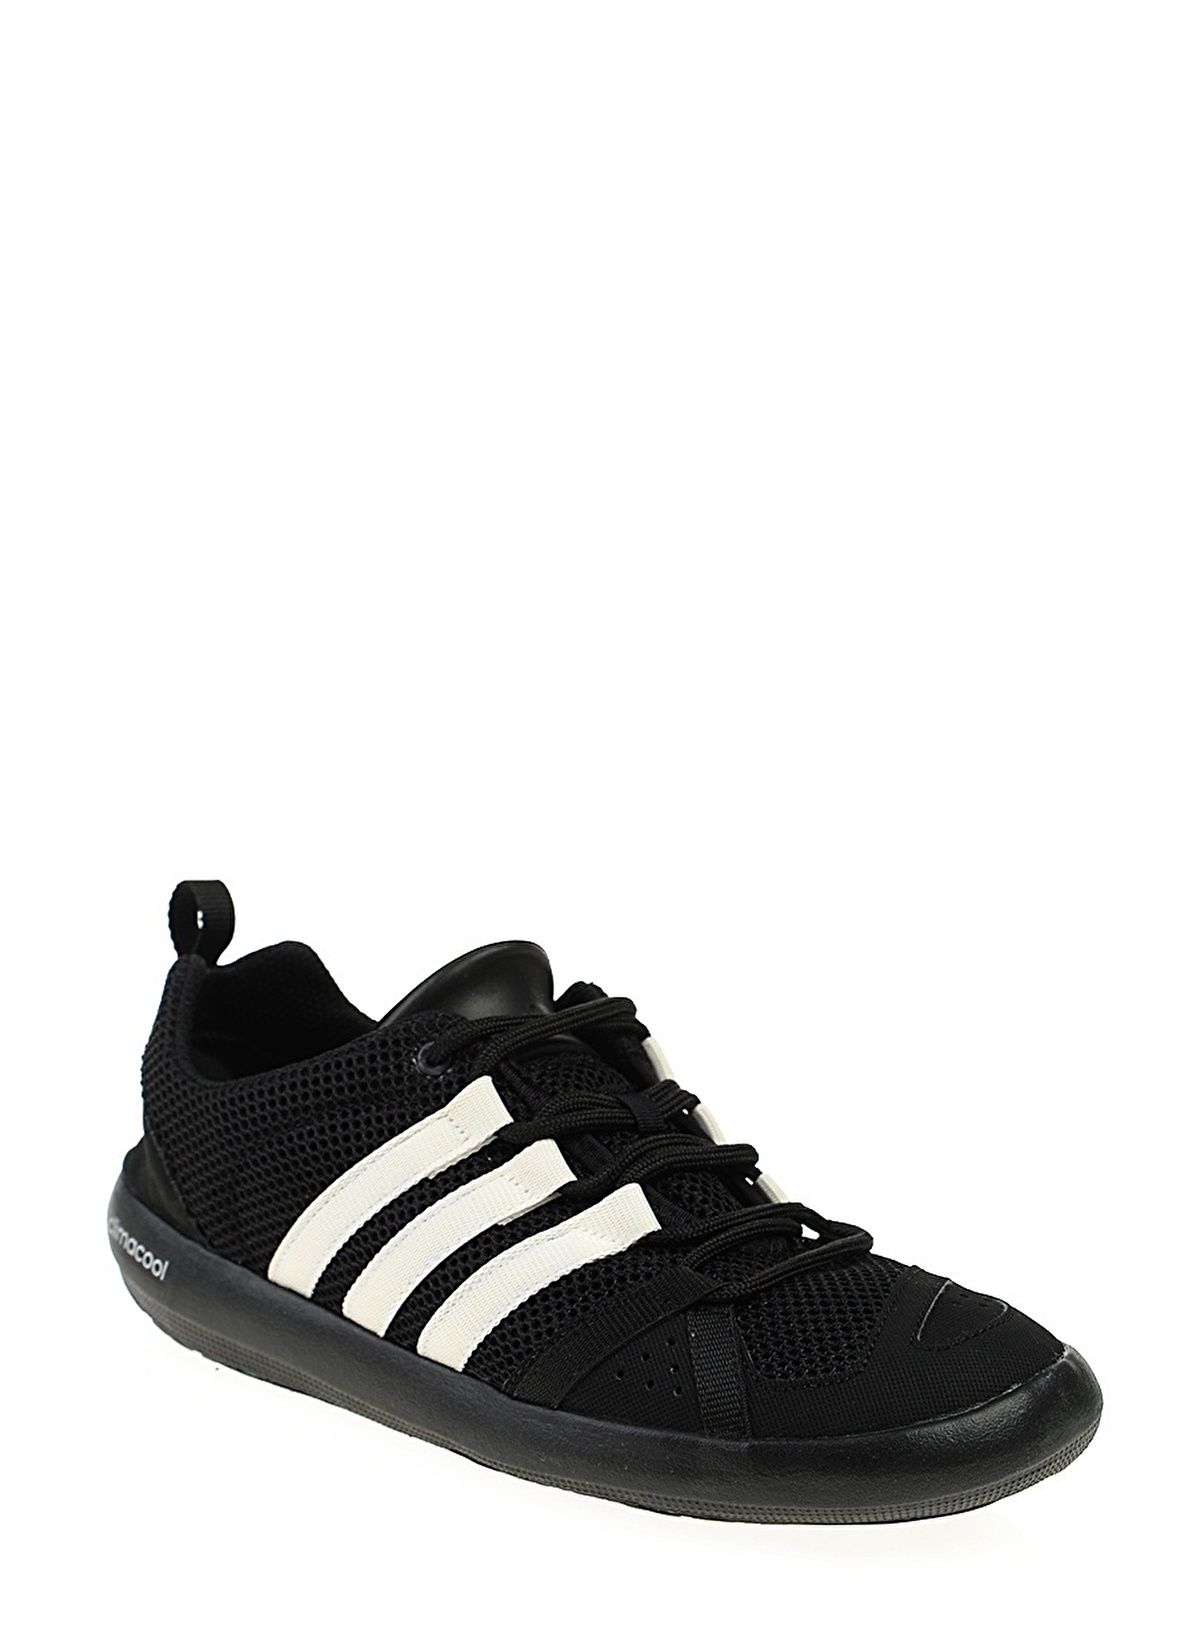 7ed371bf543d adidas Unisex Climacool Boat Lace Cblack Cwhite Silvmt